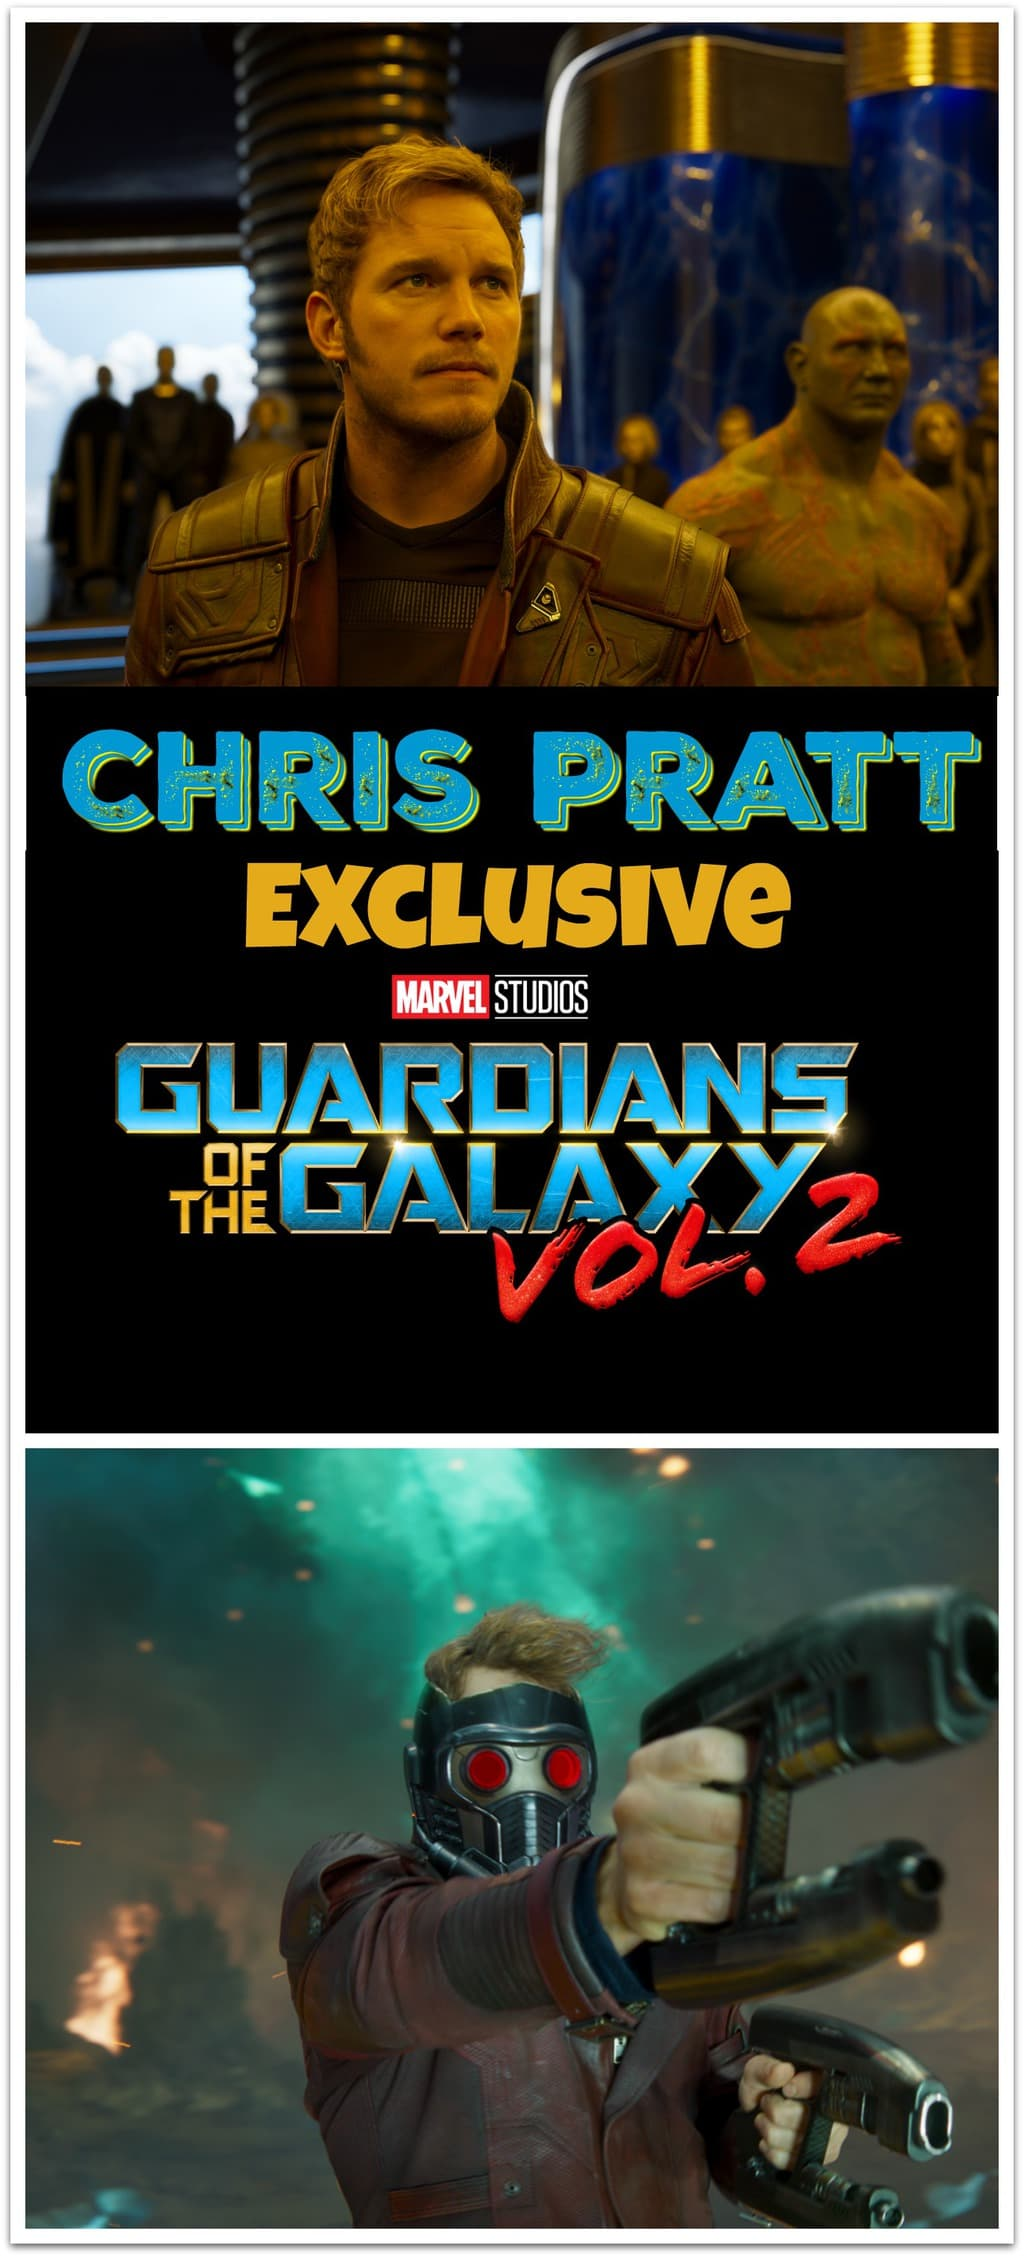 Who's excited about seeing Chris Pratt in Guardians of the Galaxy Vol. 2?